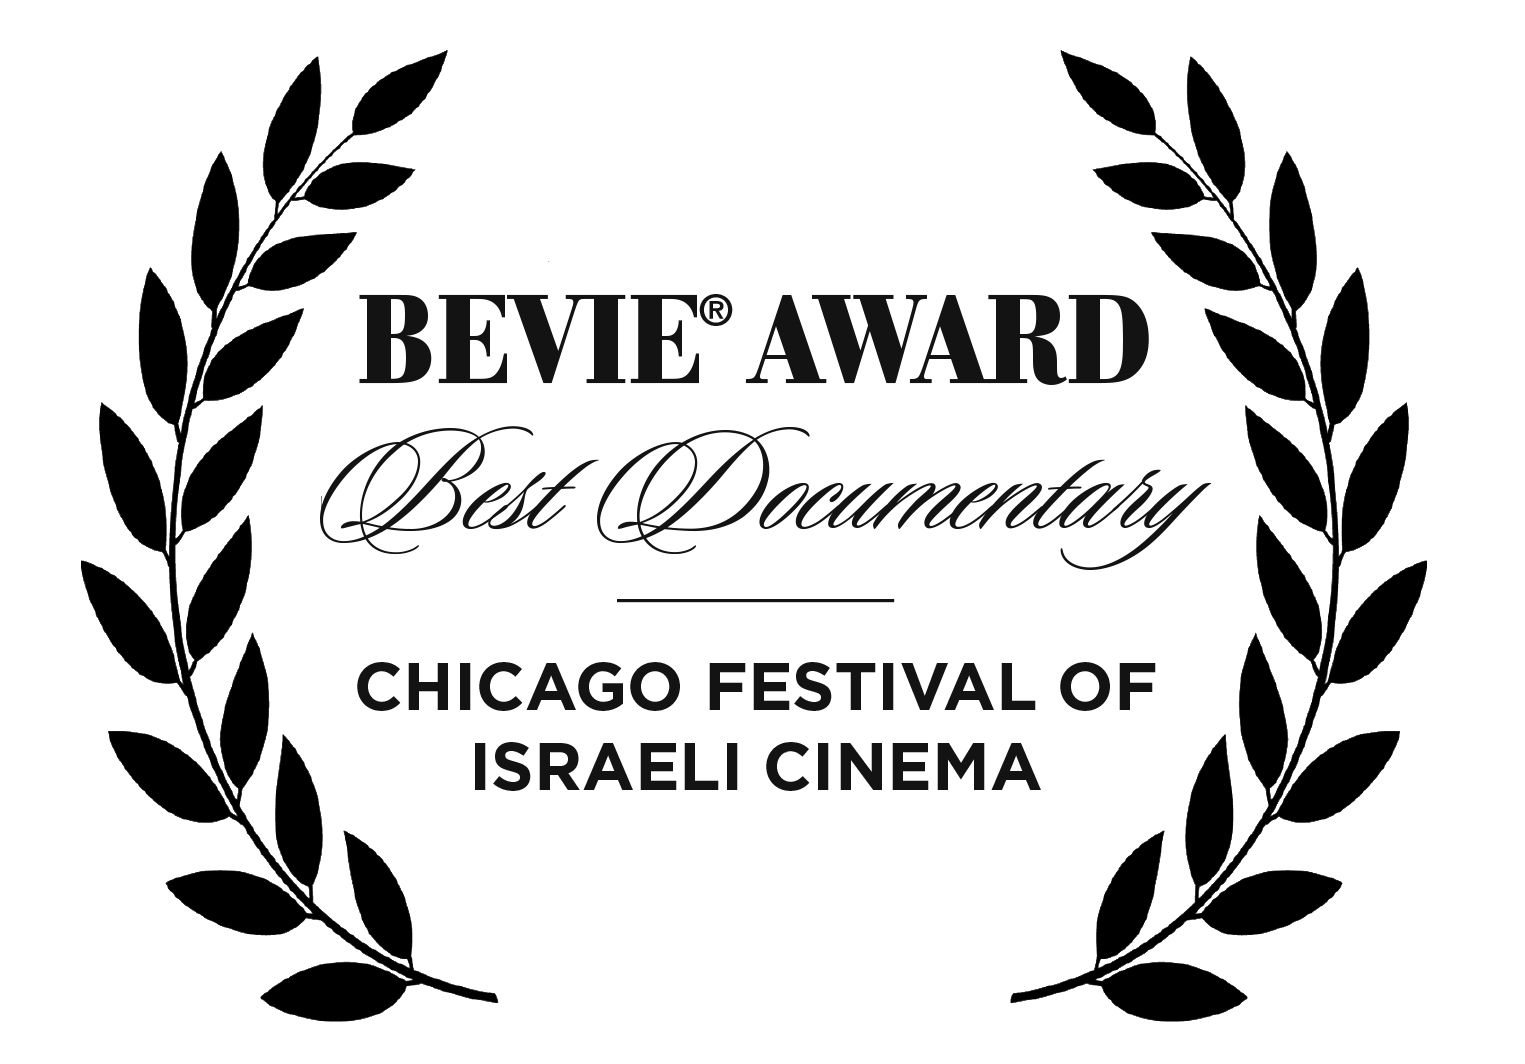 award - best documentary Operation Wedding Chicago 2017